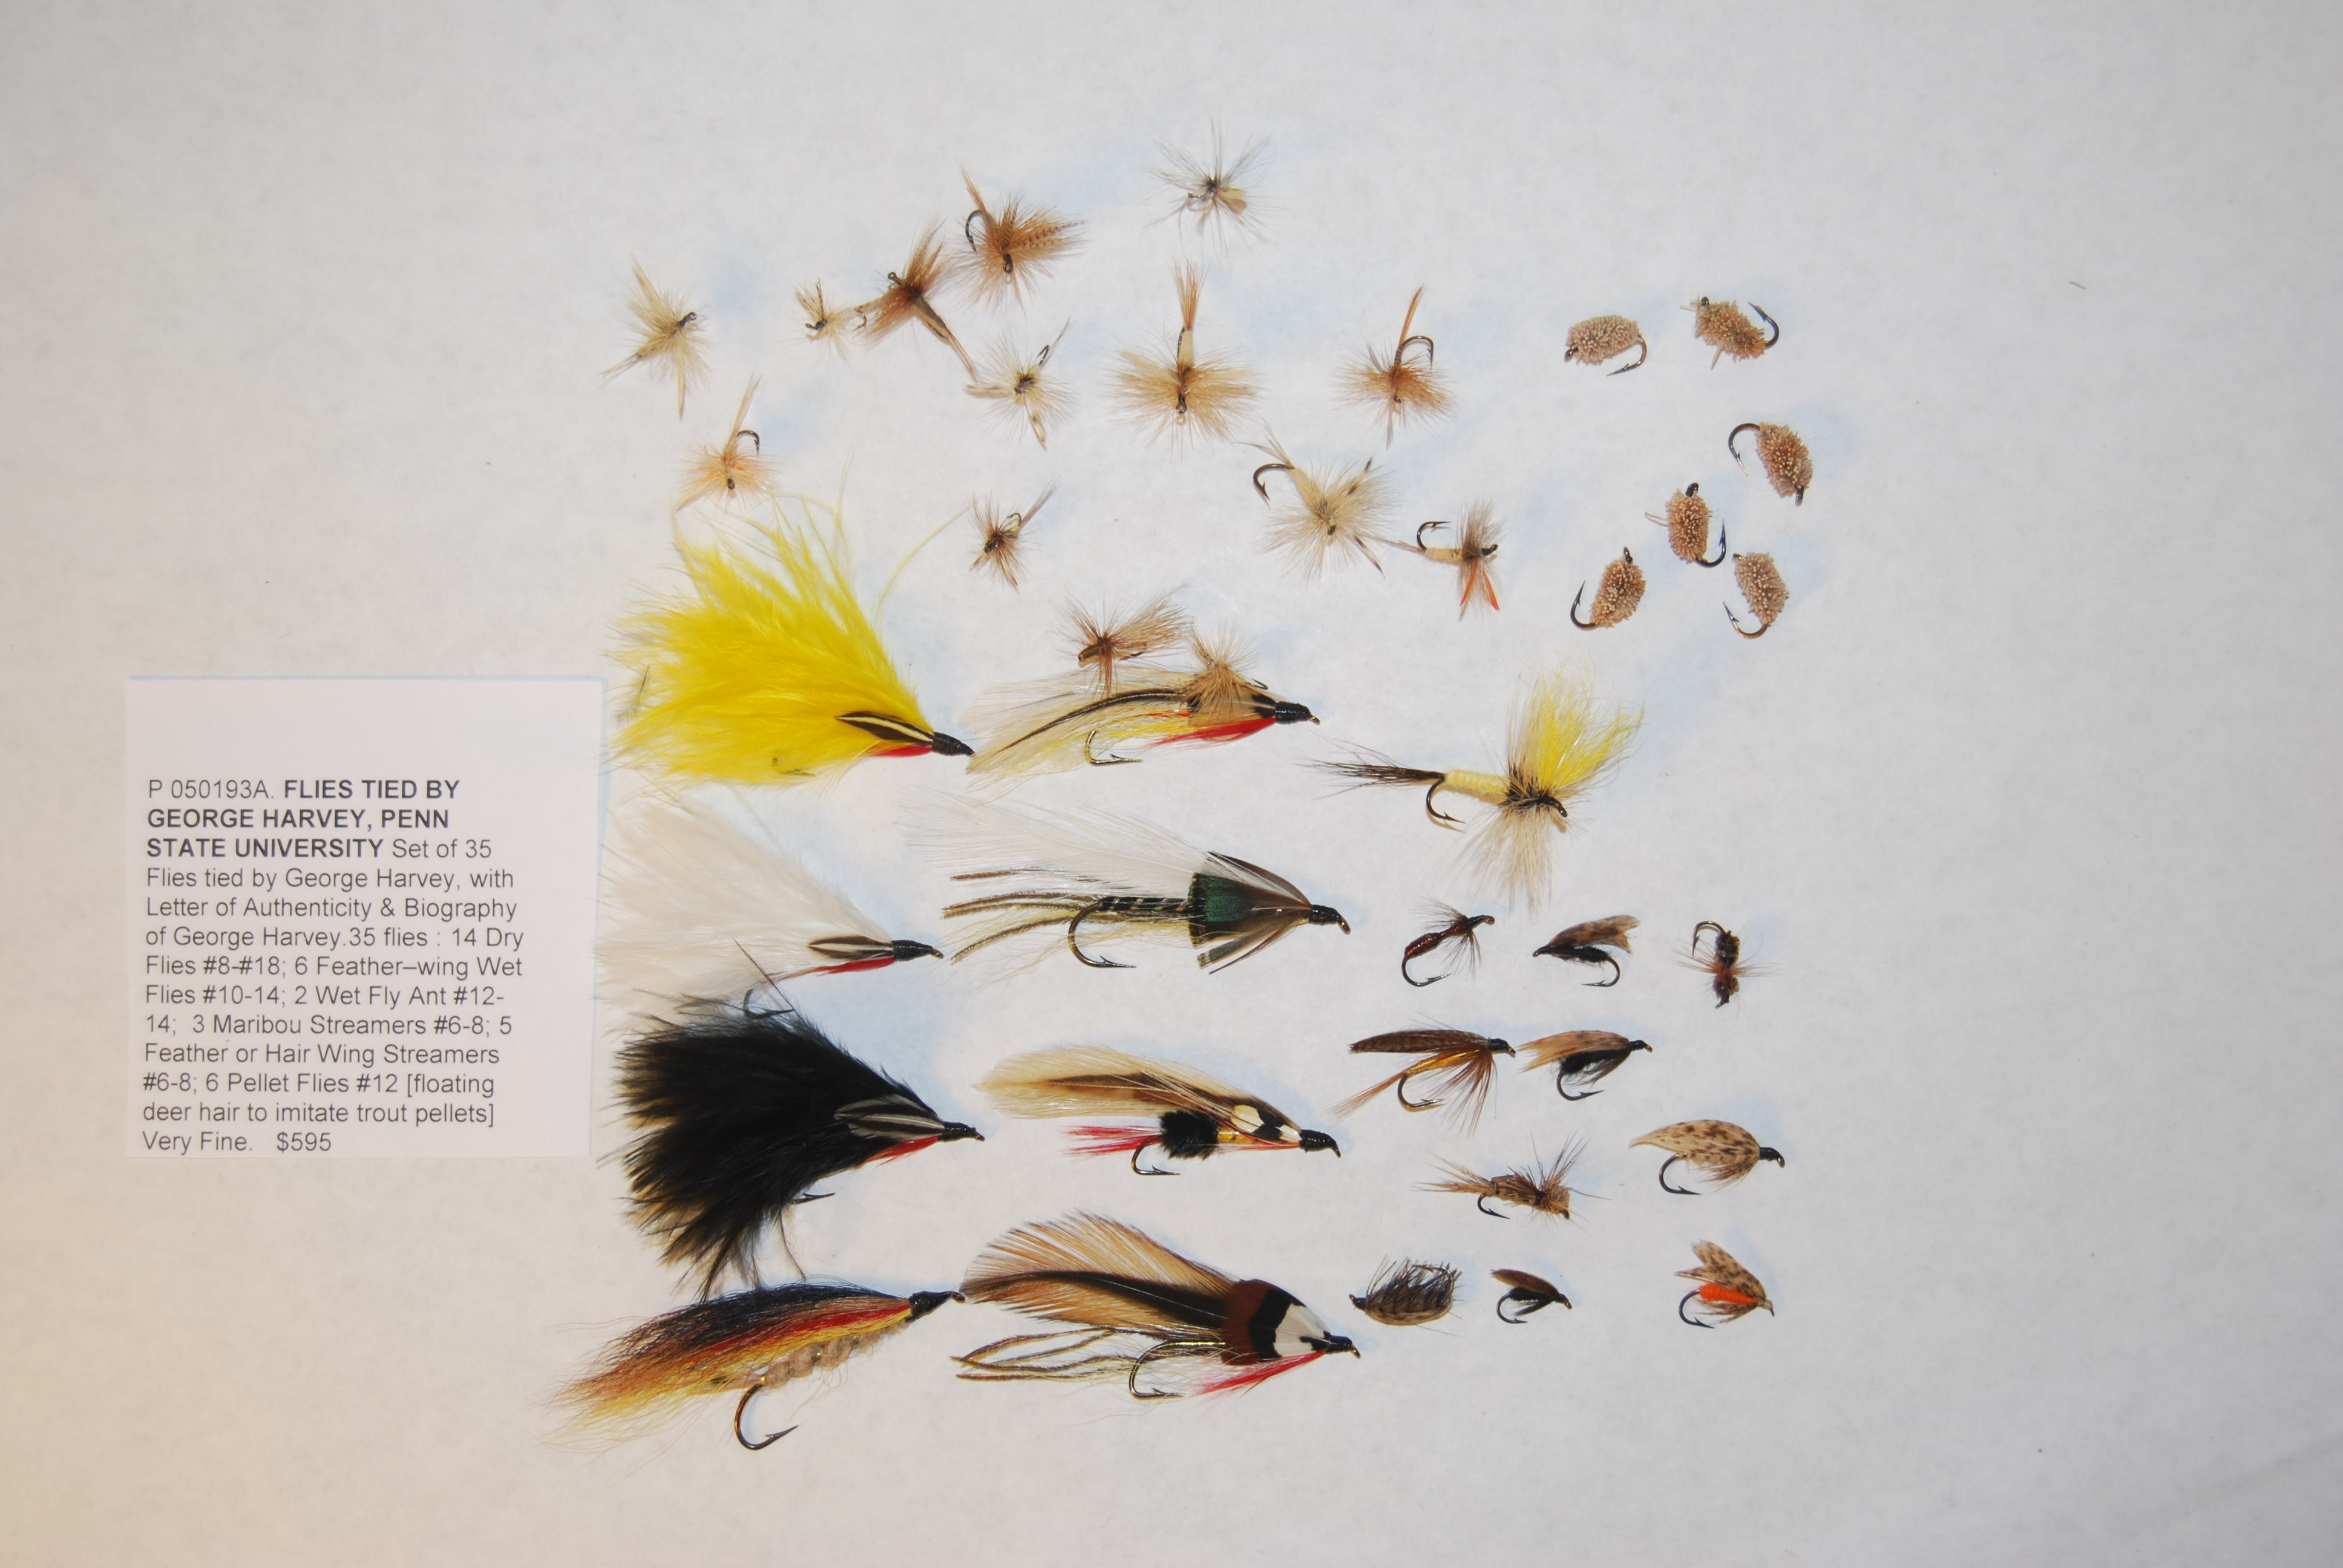 Image for Set of 35 Flies tied by George Harvey, with Letter of Authenticity & Biography.